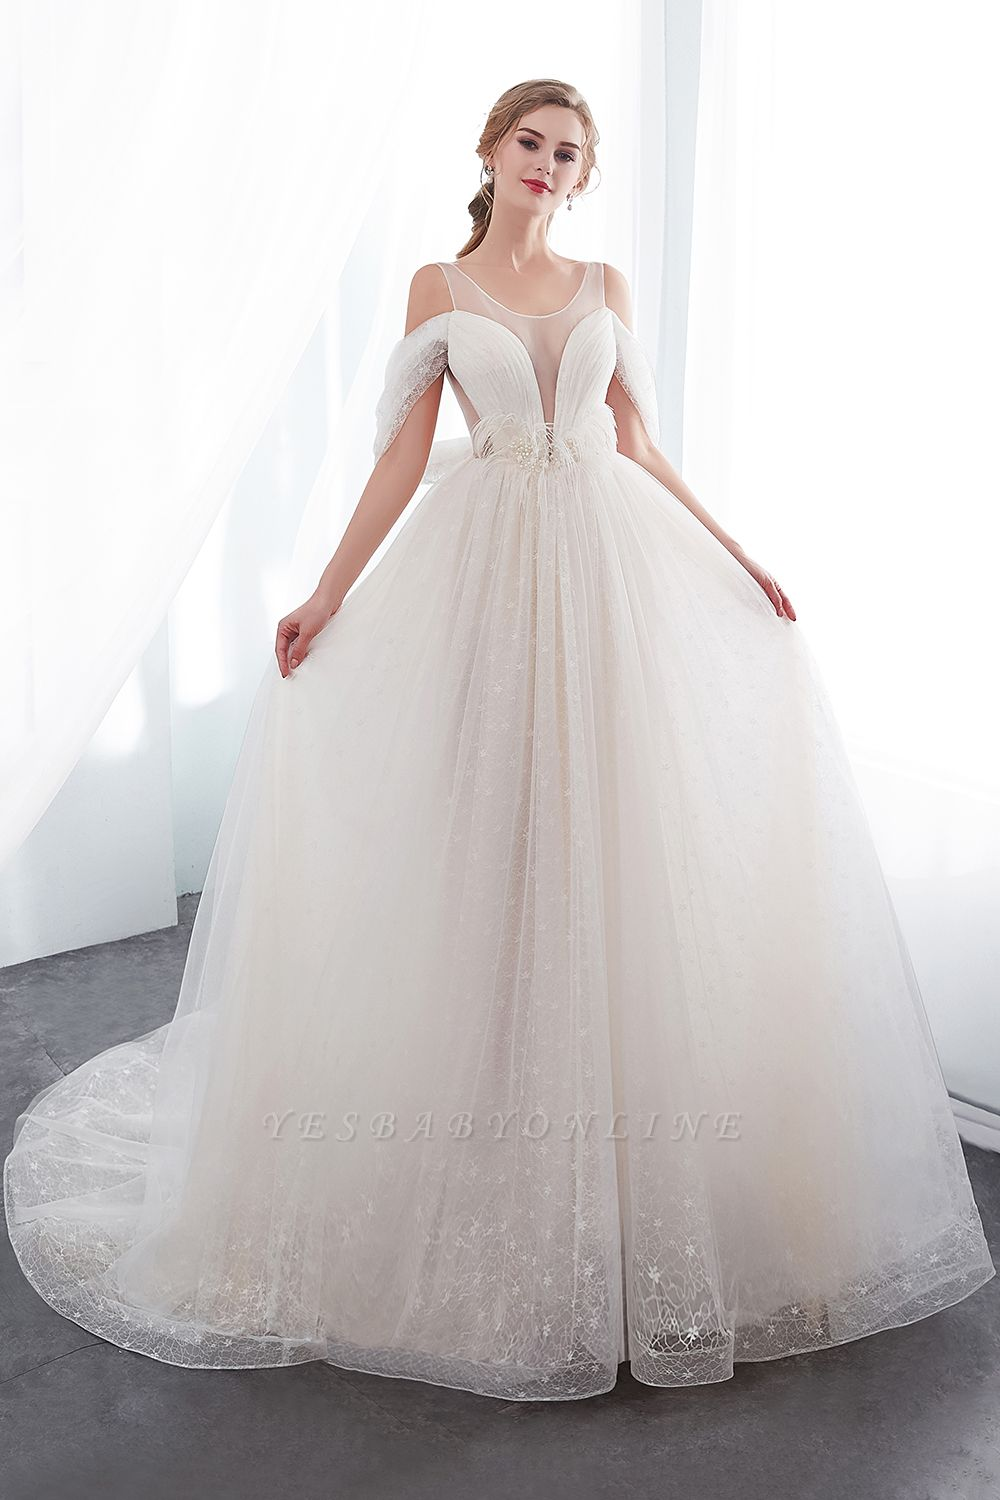 NANCY | Affordable Sleeveless Floor Length Lace Ivory Wedding Dresses